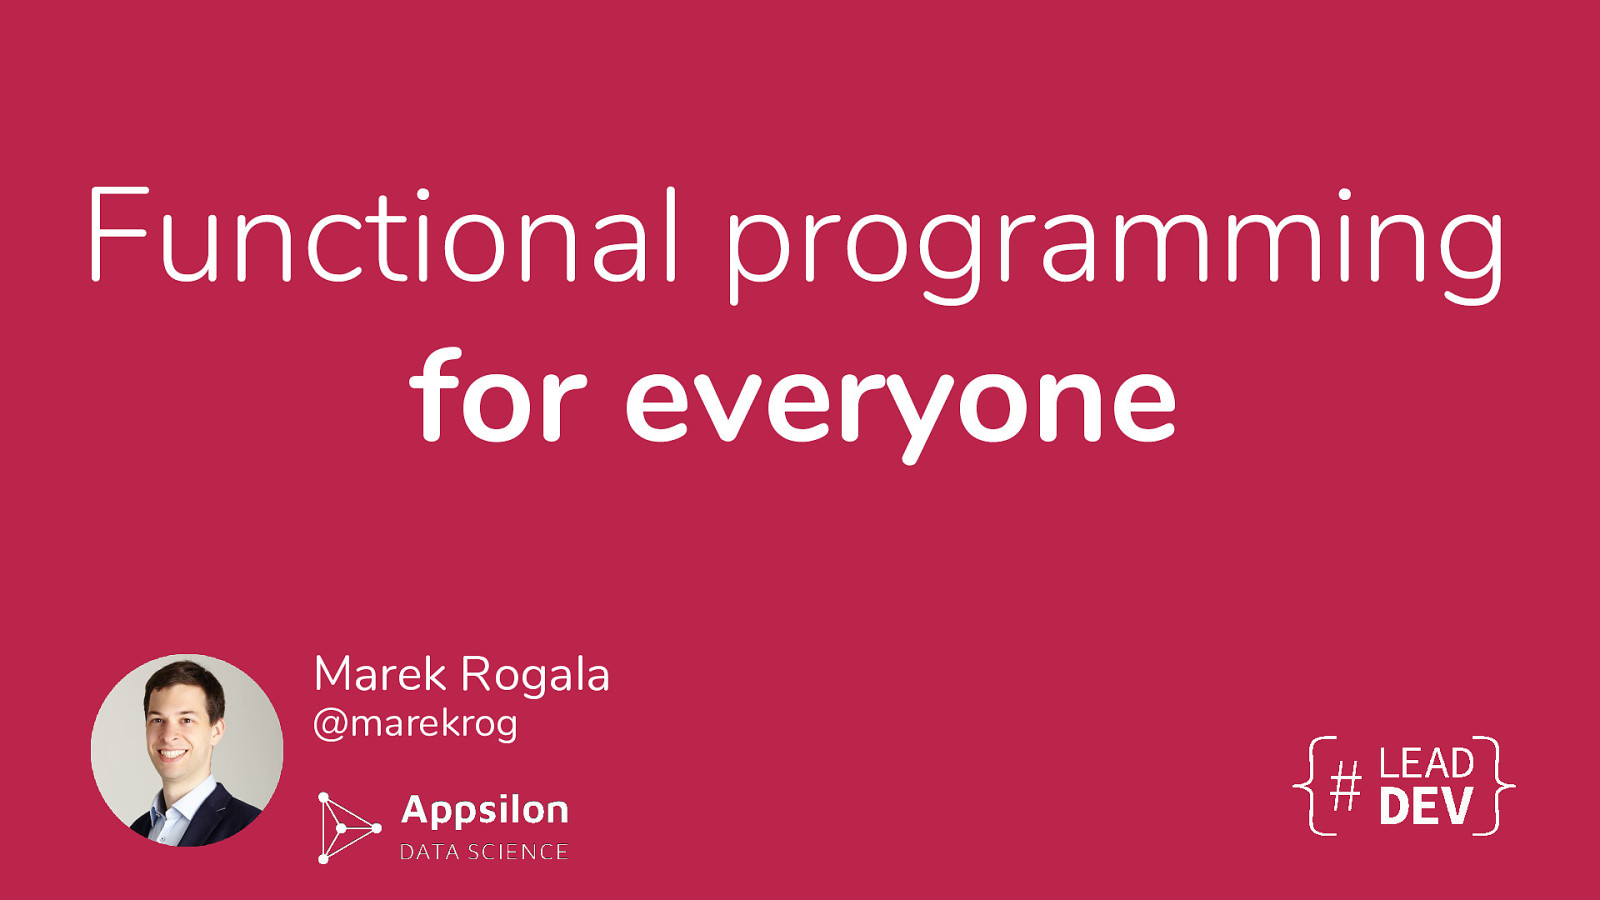 Functional programming for everyone